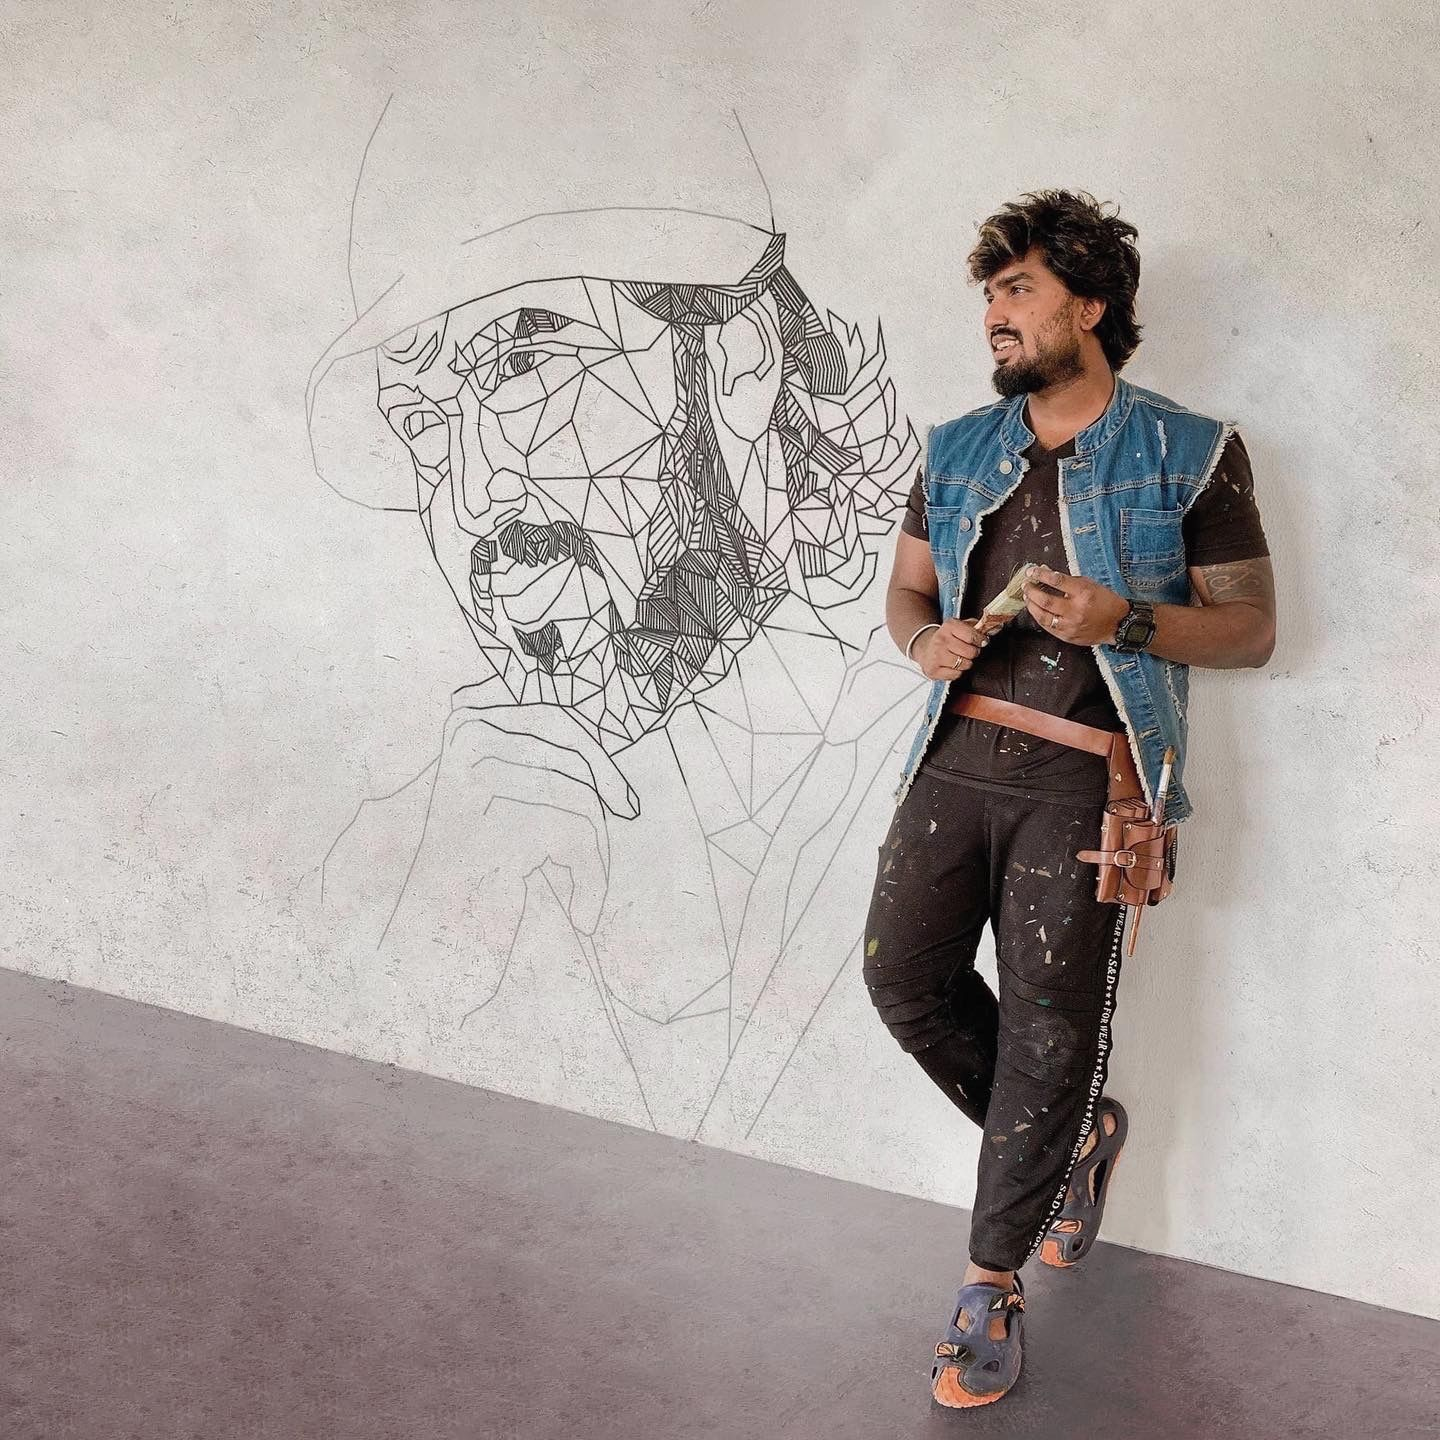 Indian artist based in Dubai, Created masterpiece by unleashing his doodling skills